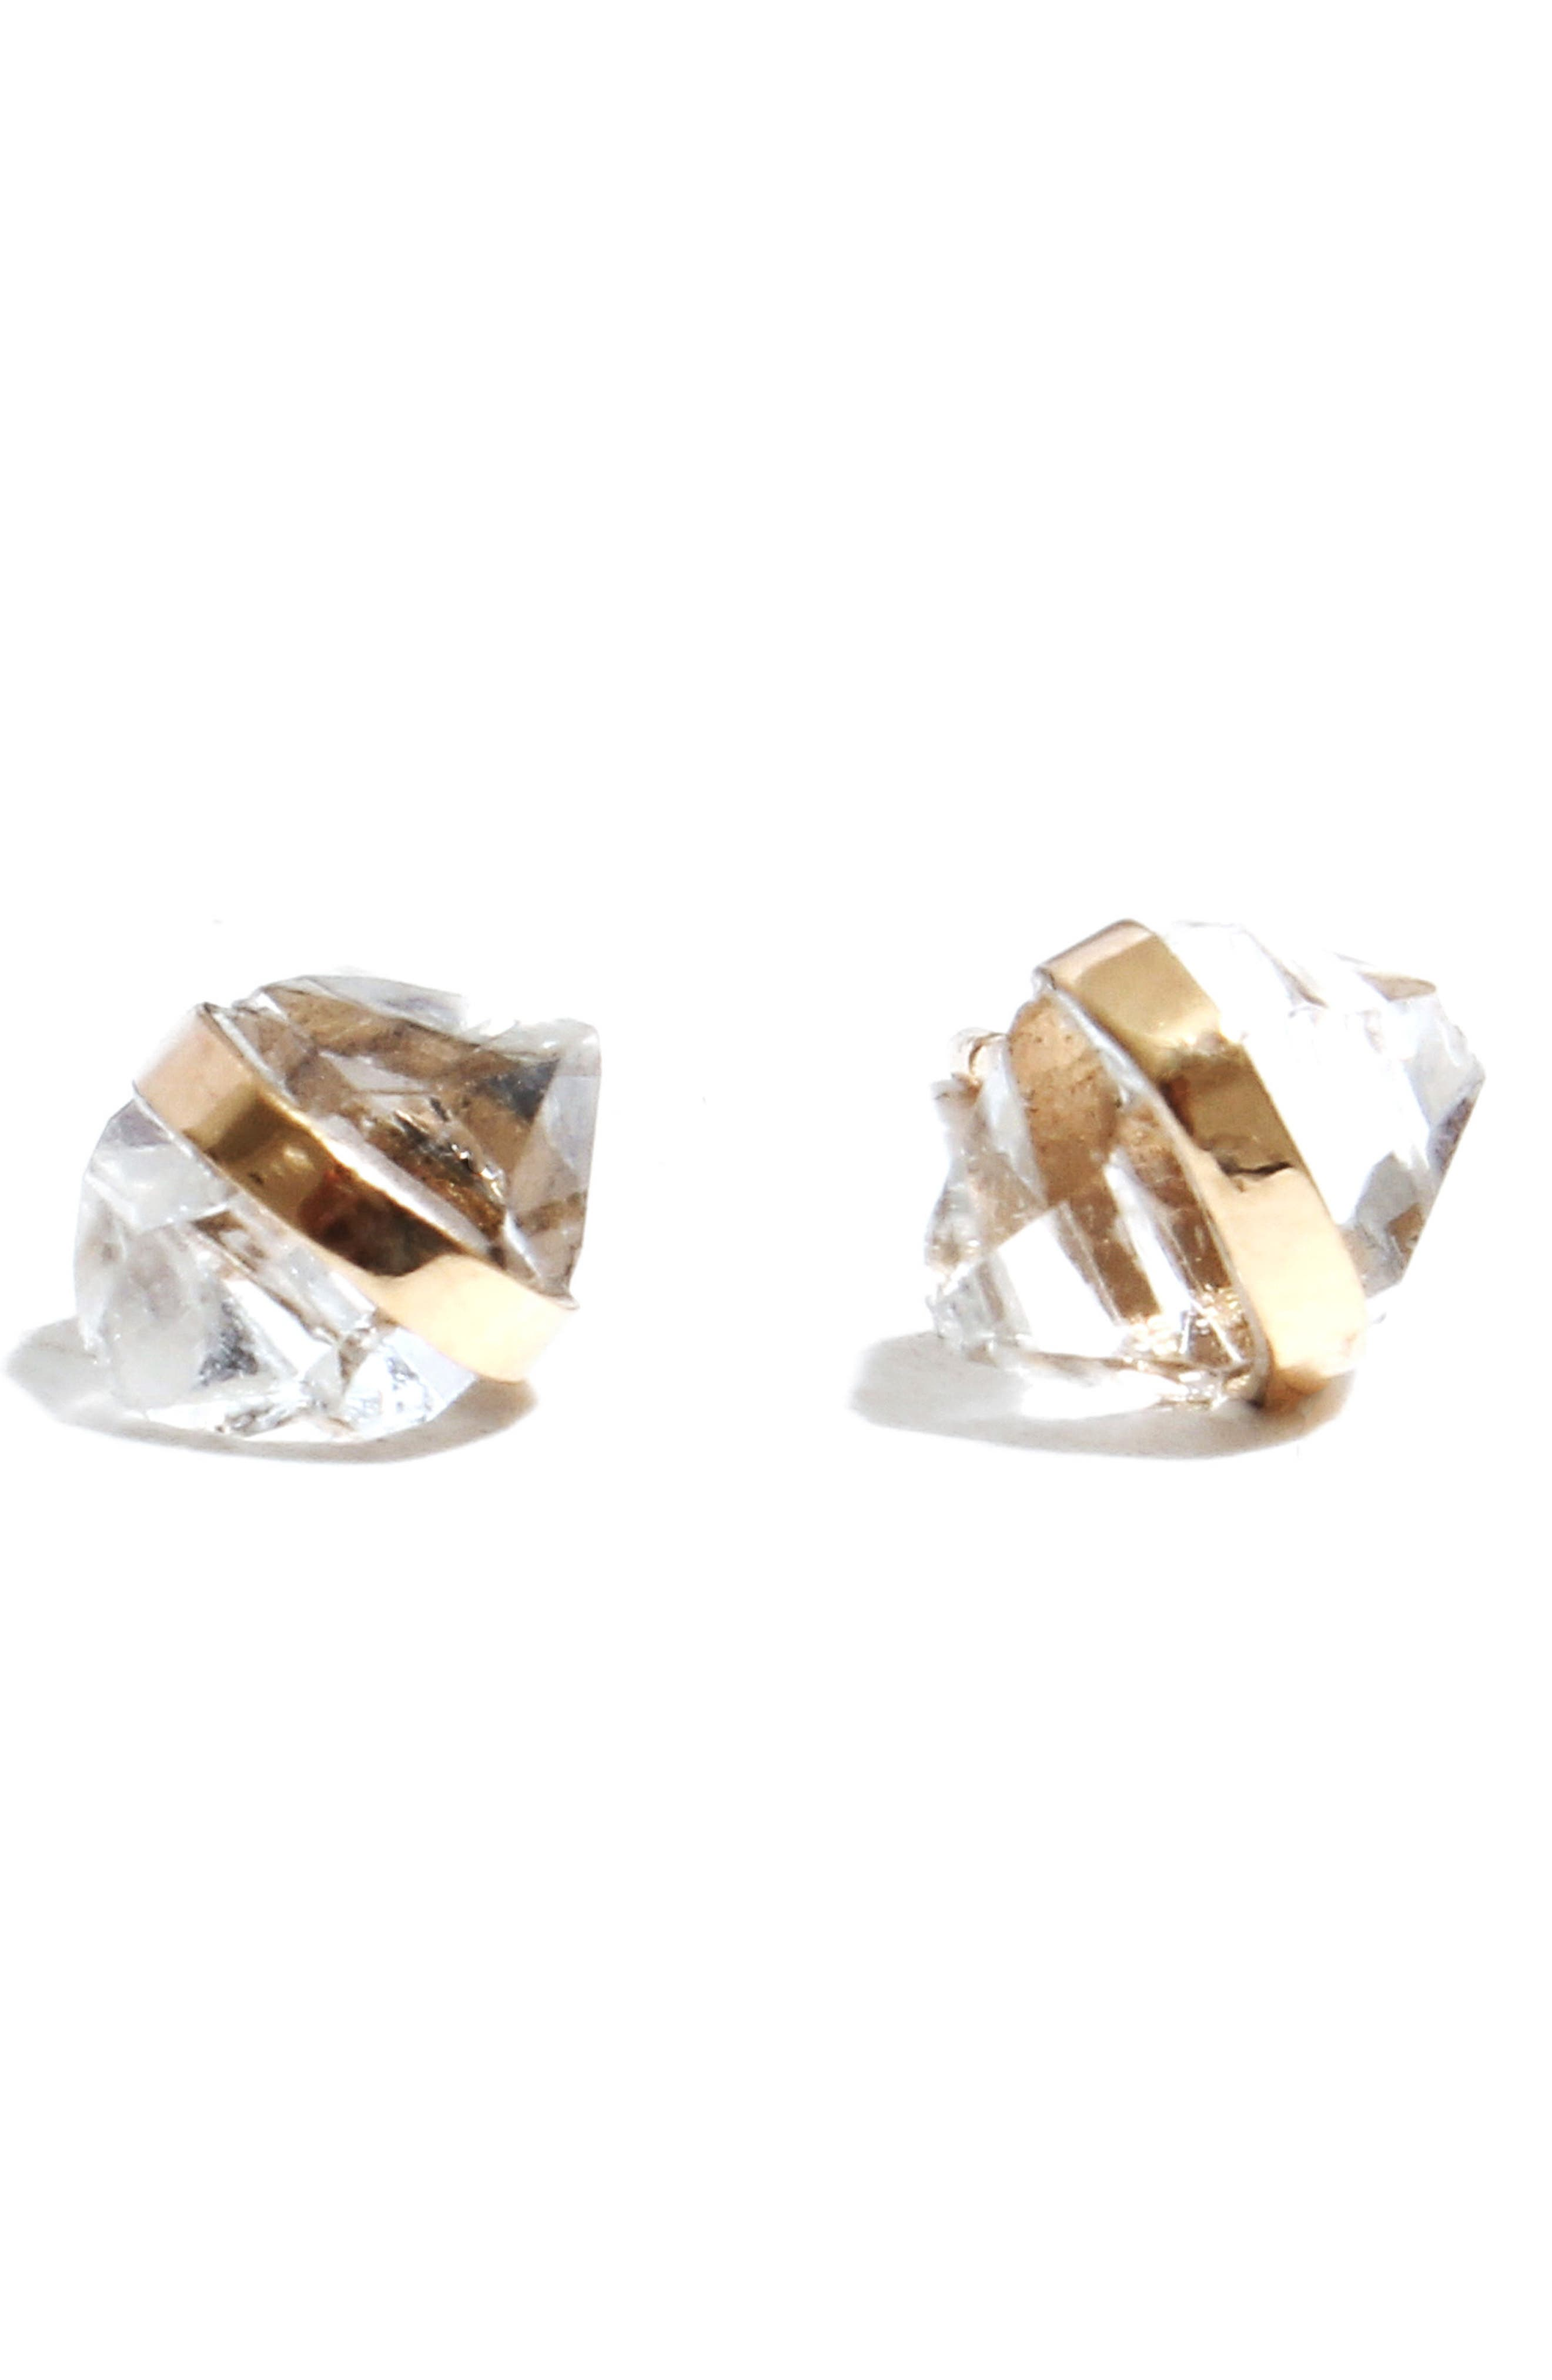 Stone Stud Earrings,                             Main thumbnail 1, color,                             YELLOW GOLD